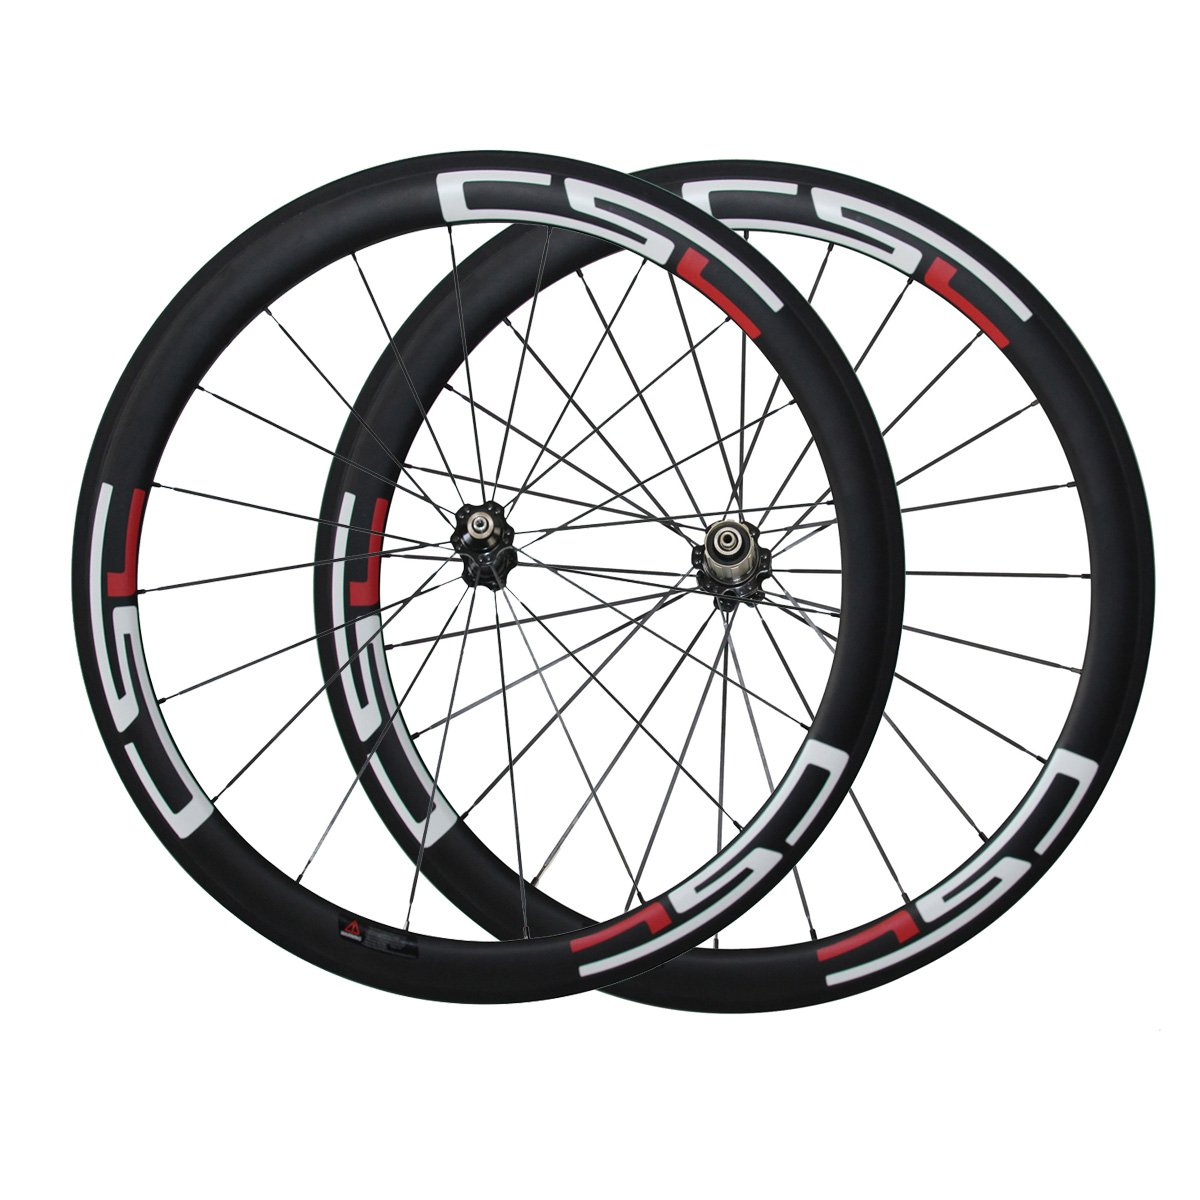 Amazon com csc 50mm clincher carbon fiber road bike wheels 3k matte with decals red and white decal sports outdoors